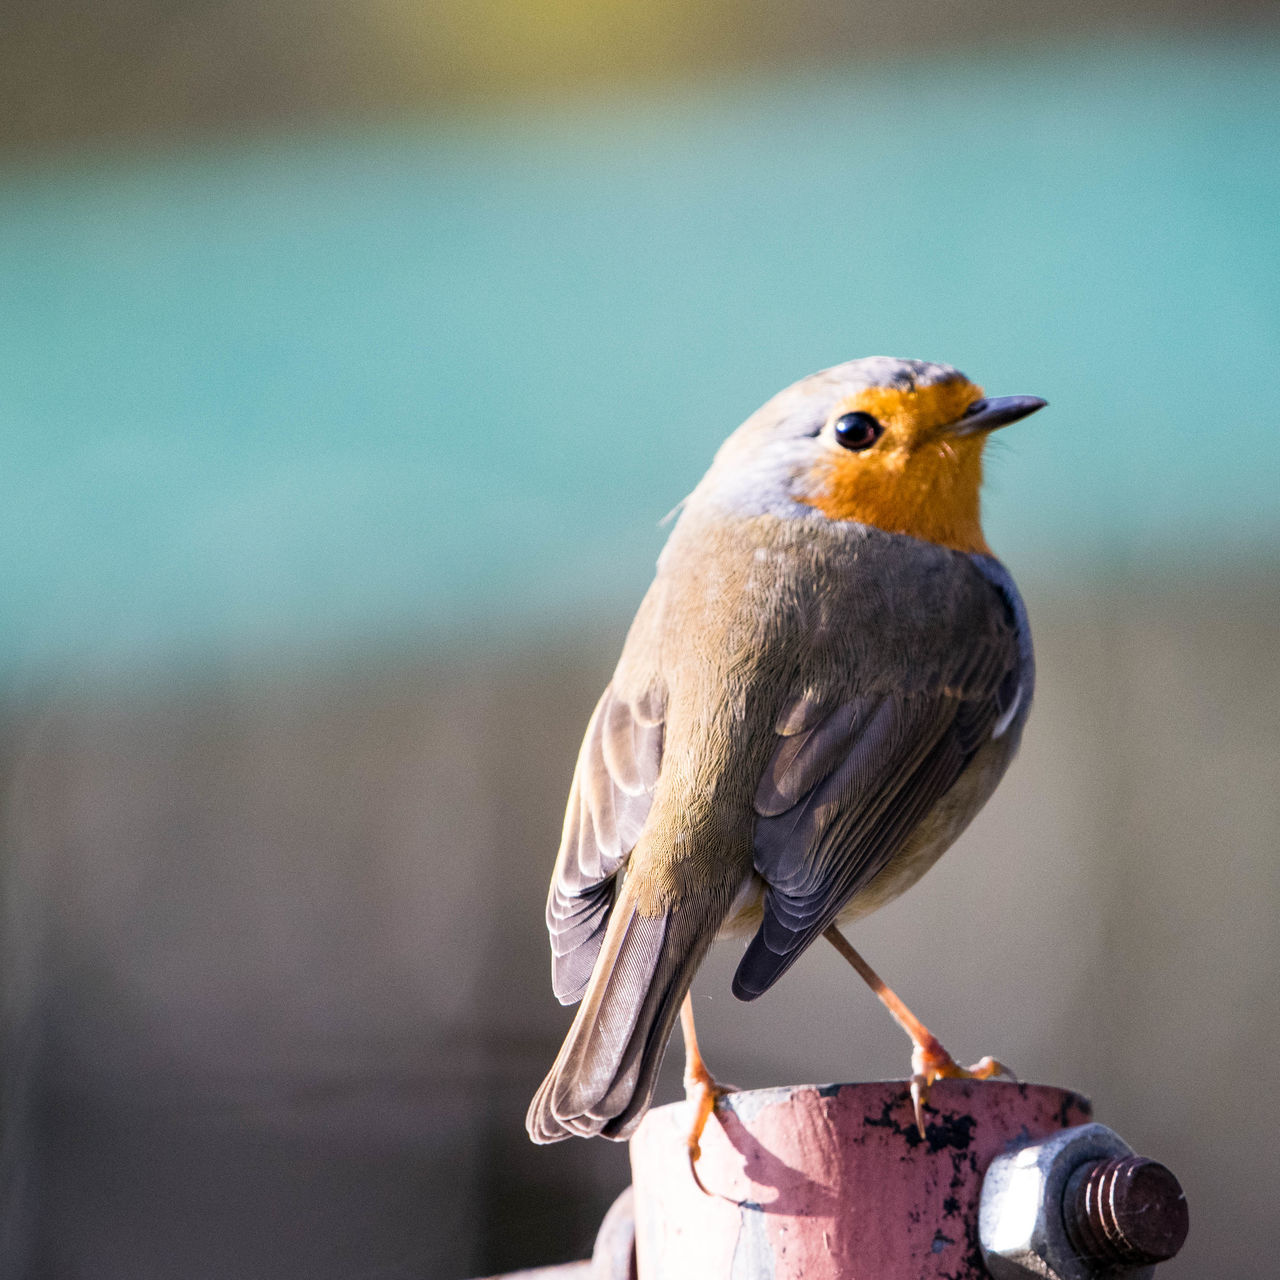 Animal Themes Animal Wildlife Animals In The Wild Bird Close-up Day European Robin ( Erithacus Rubecula) Focus On Foreground Nature No People One Animal Outdoors Perching Robin Robin Redbreast Rotkehlchen